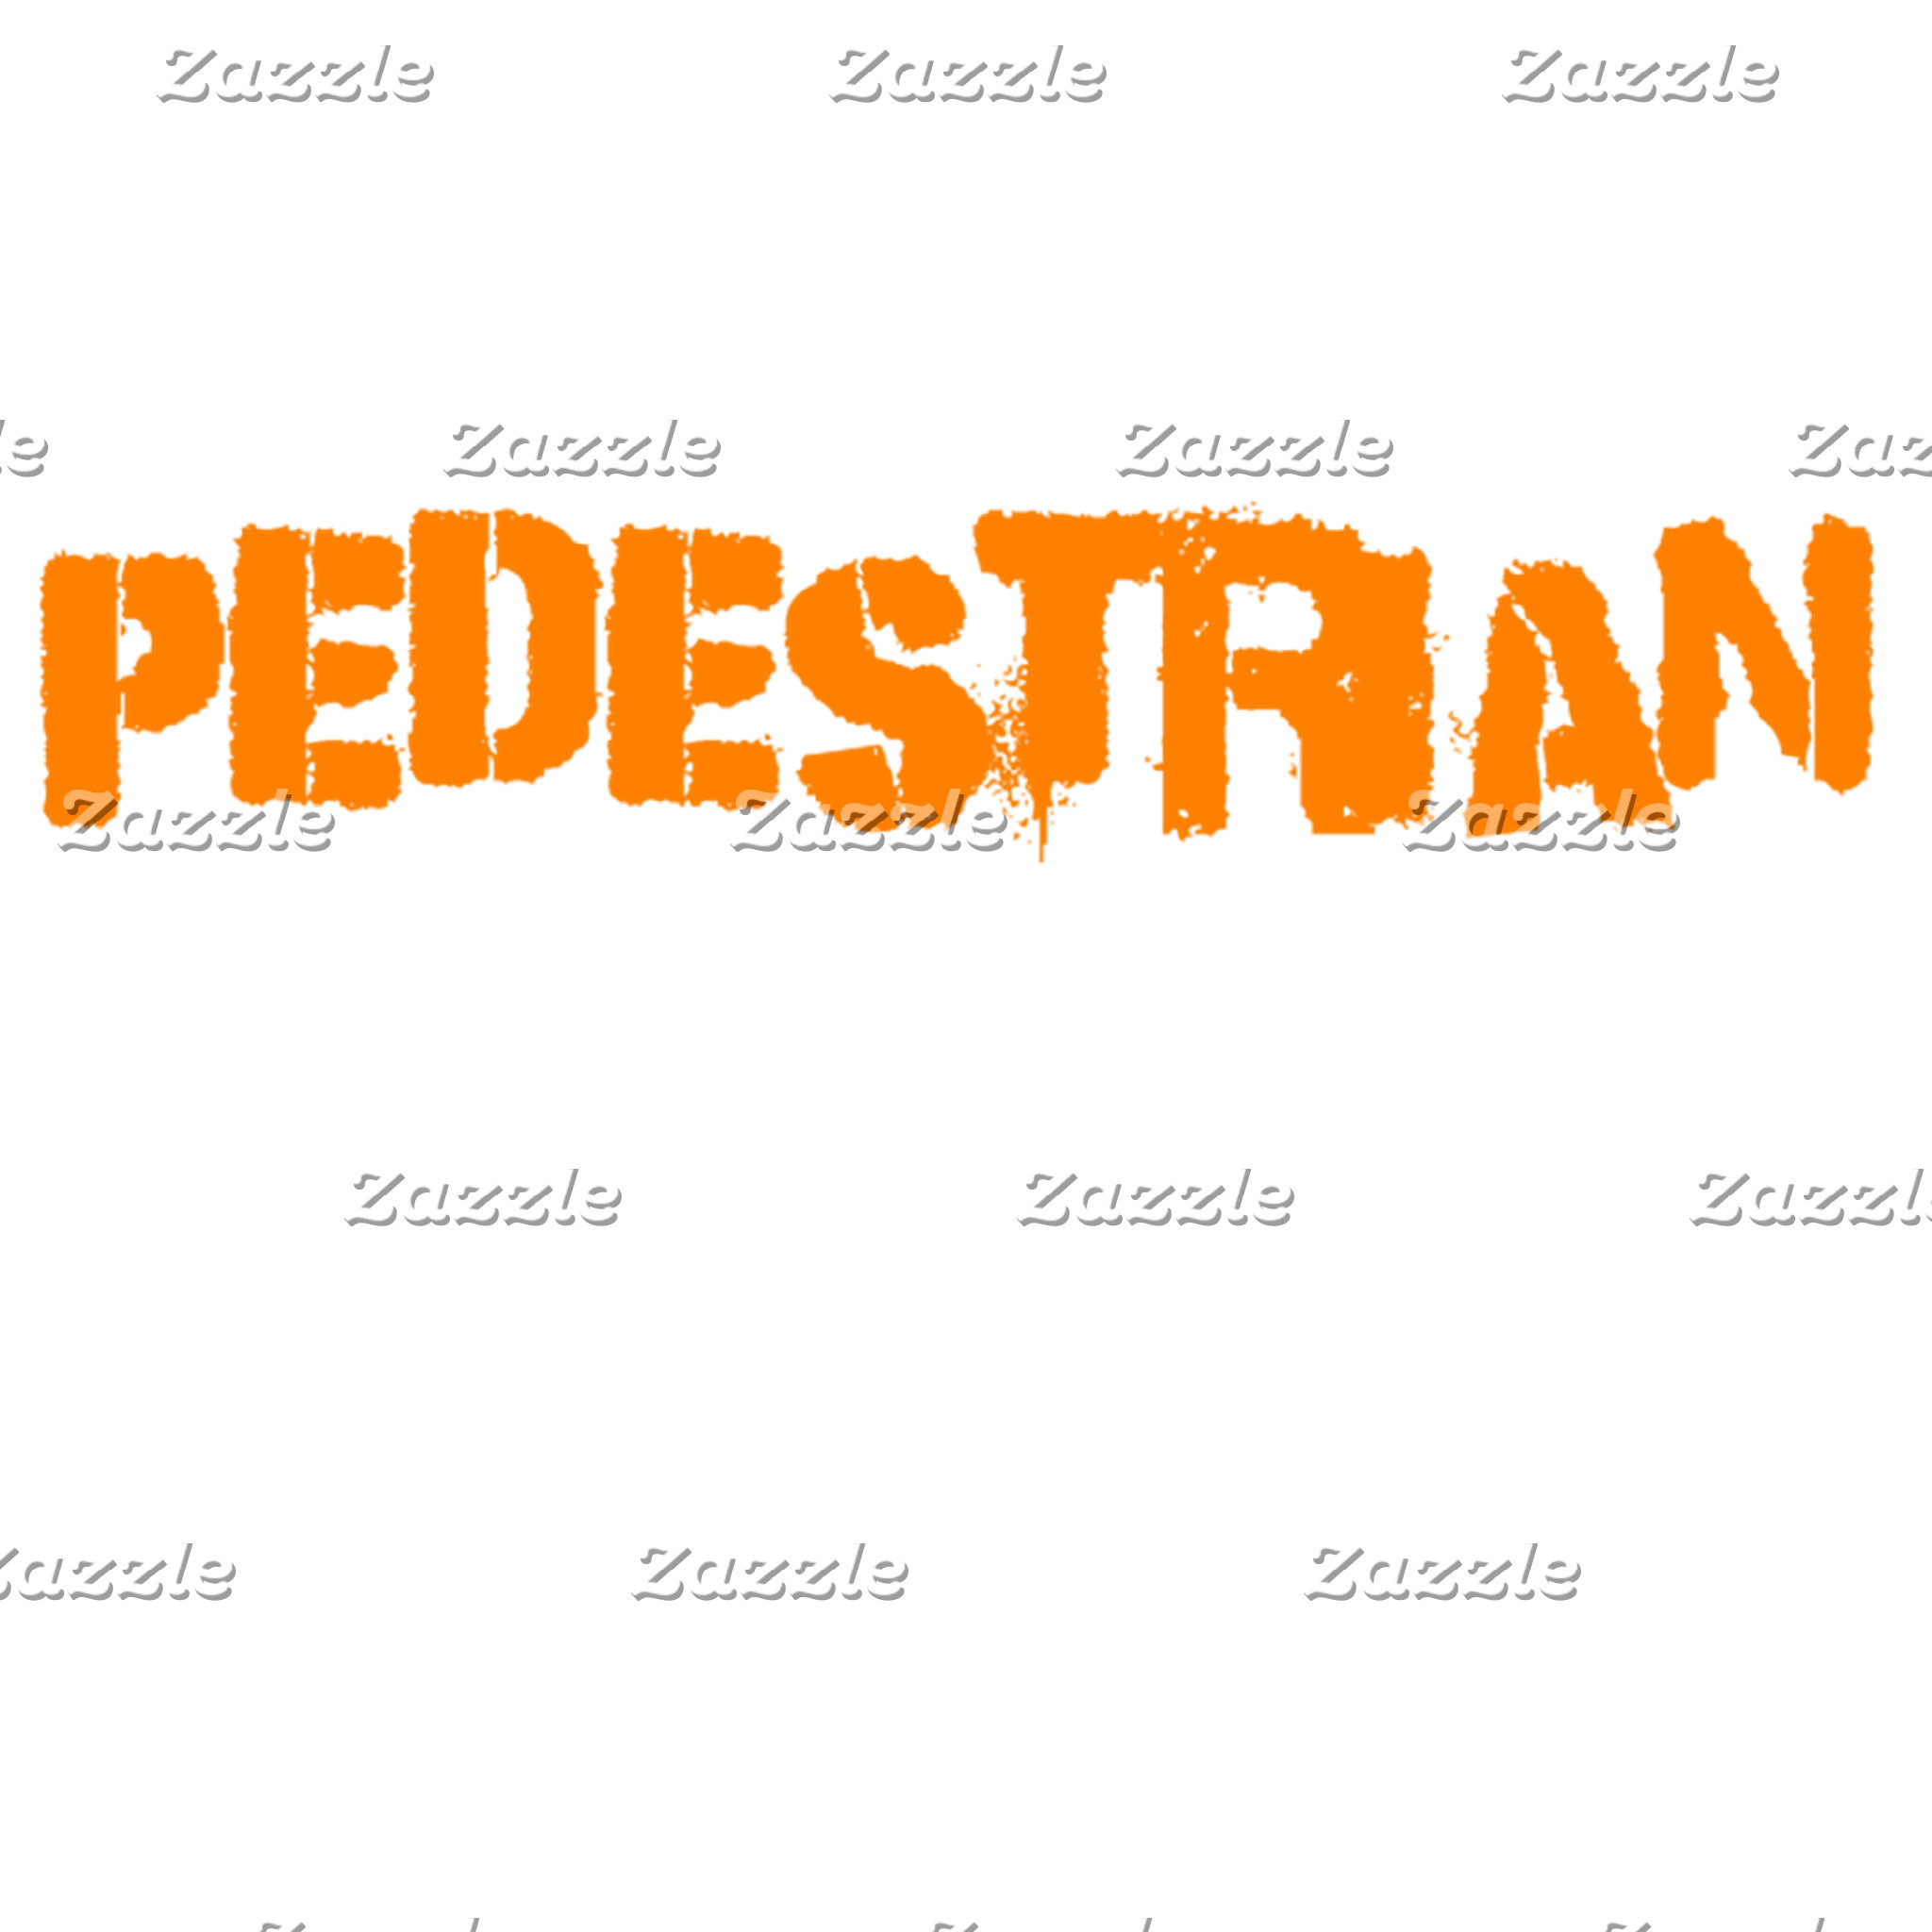 Pedestrian 10 points